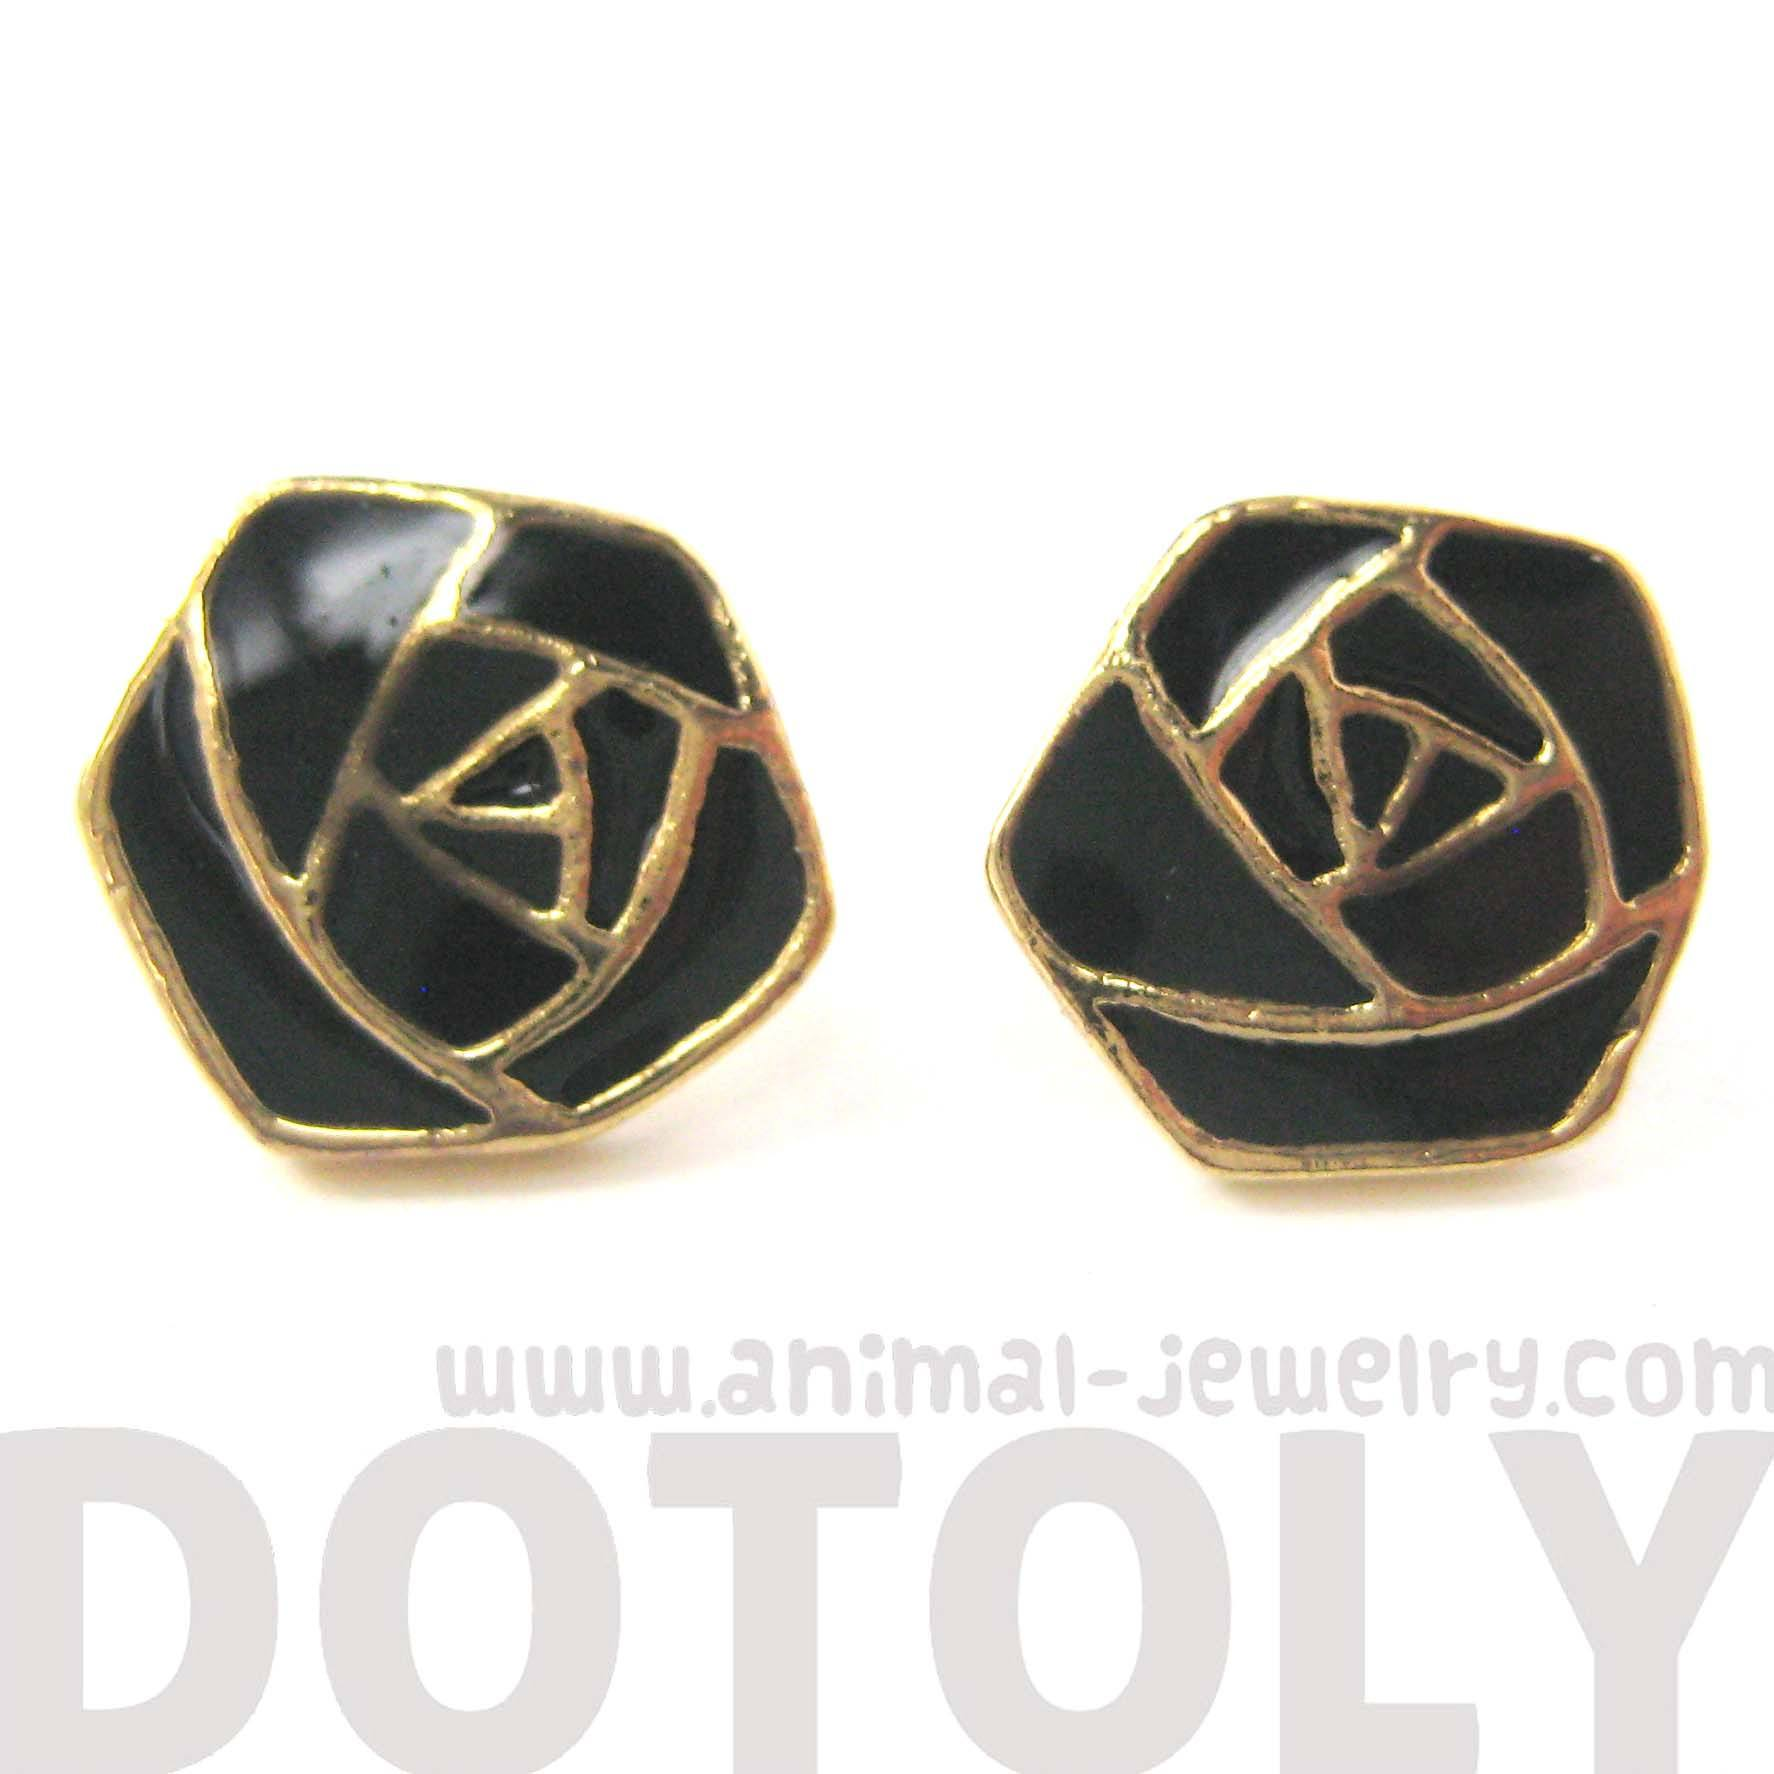 classic-rose-outline-floral-flower-shaped-stud-earrings-in-black-on-gold